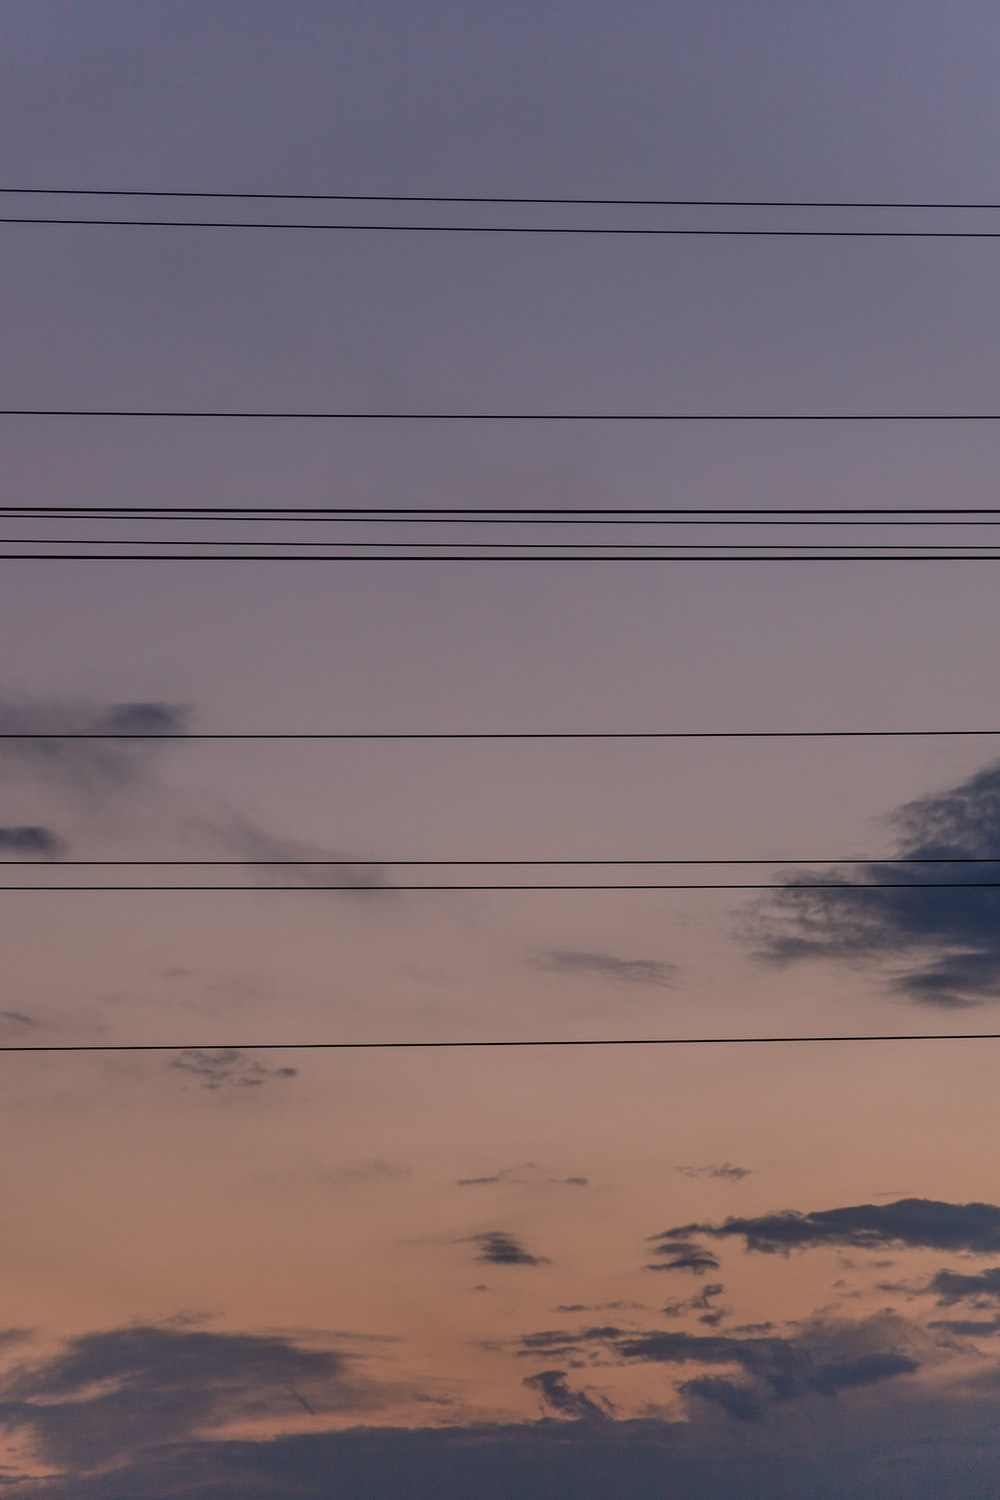 black electric wires under white clouds and blue sky during daytime